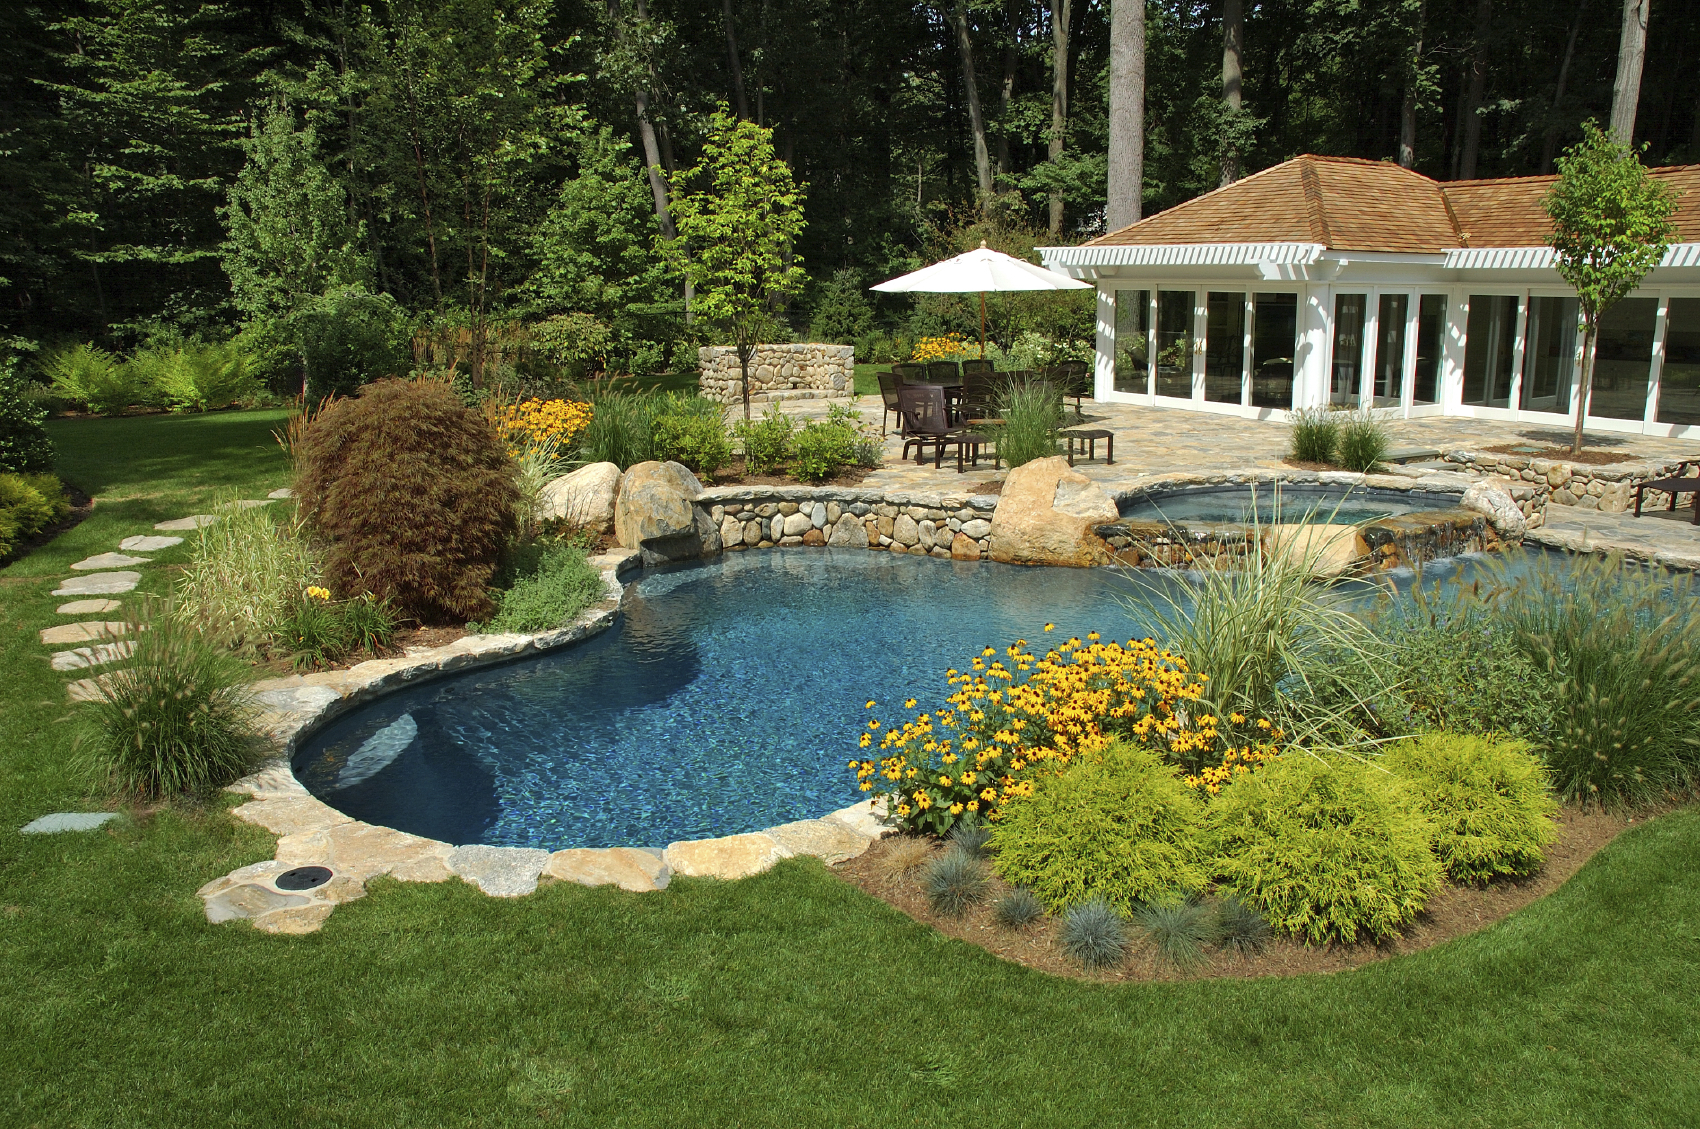 Backyard Pool Landscape Designs 1700 x 1129